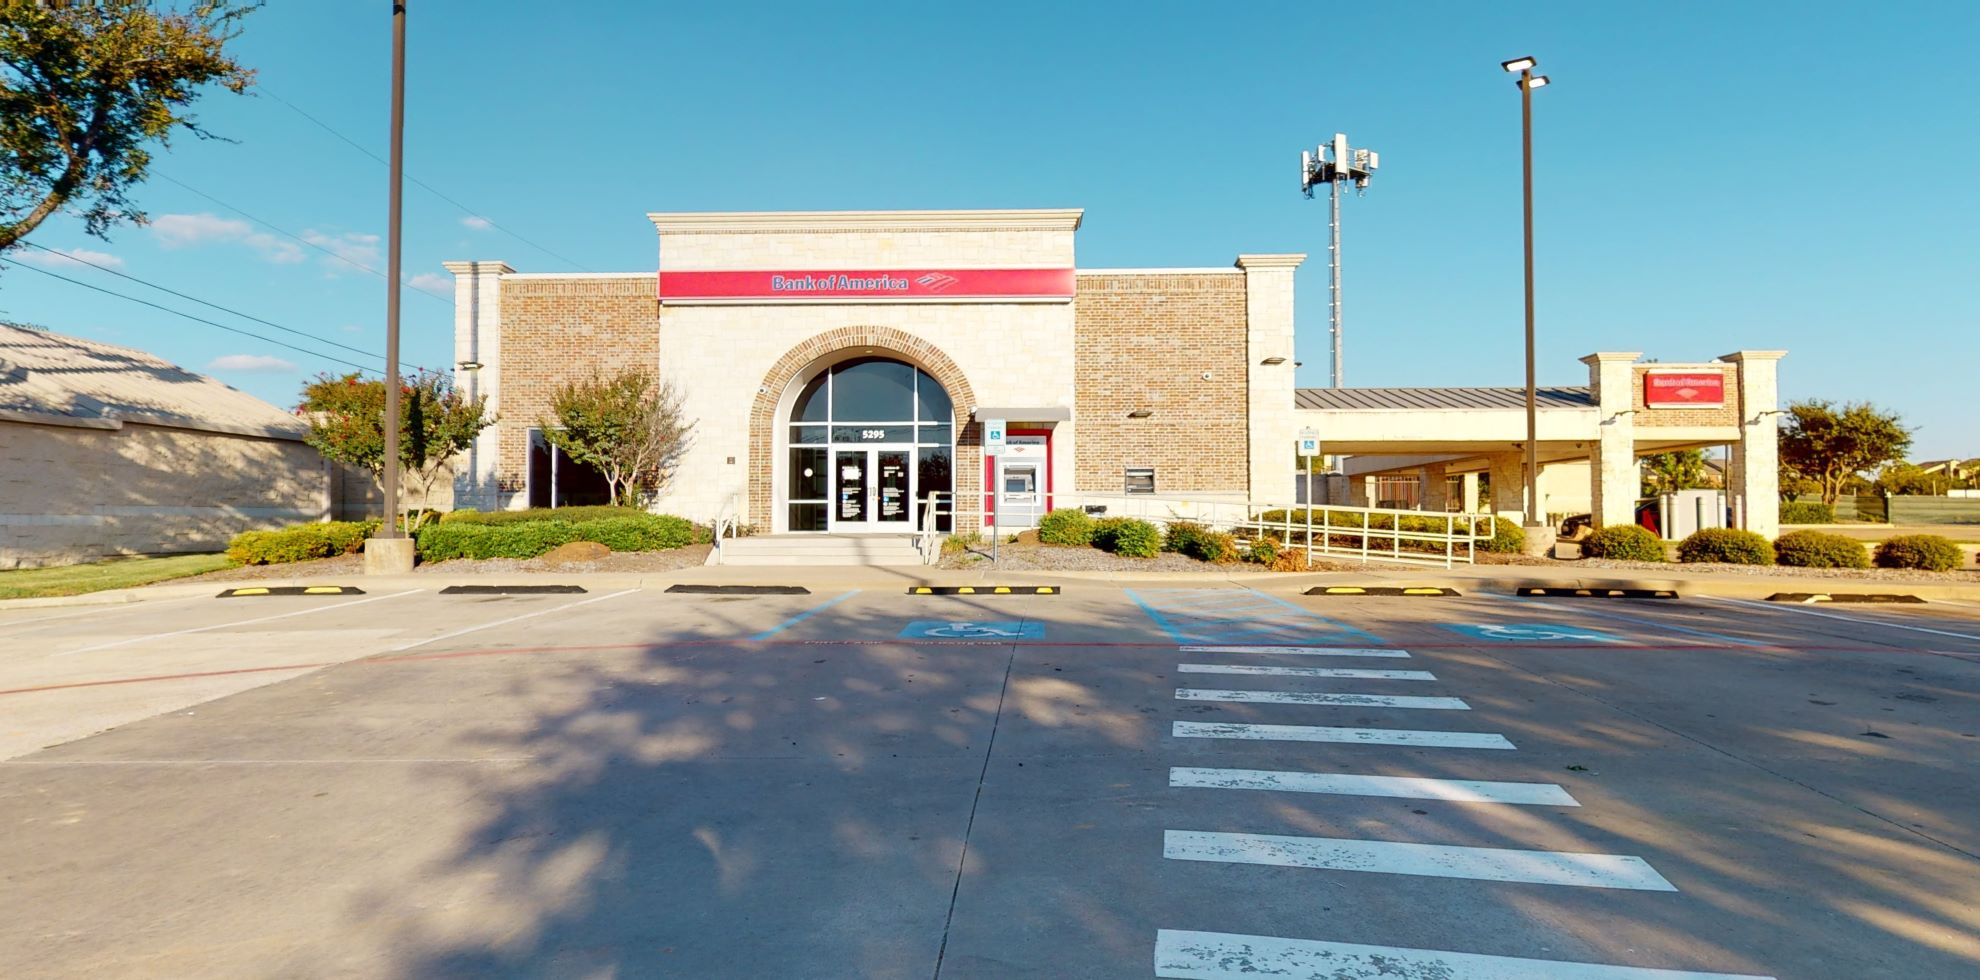 Bank of America financial center with drive-thru ATM   5295 S Cooper St, Arlington, TX 76017